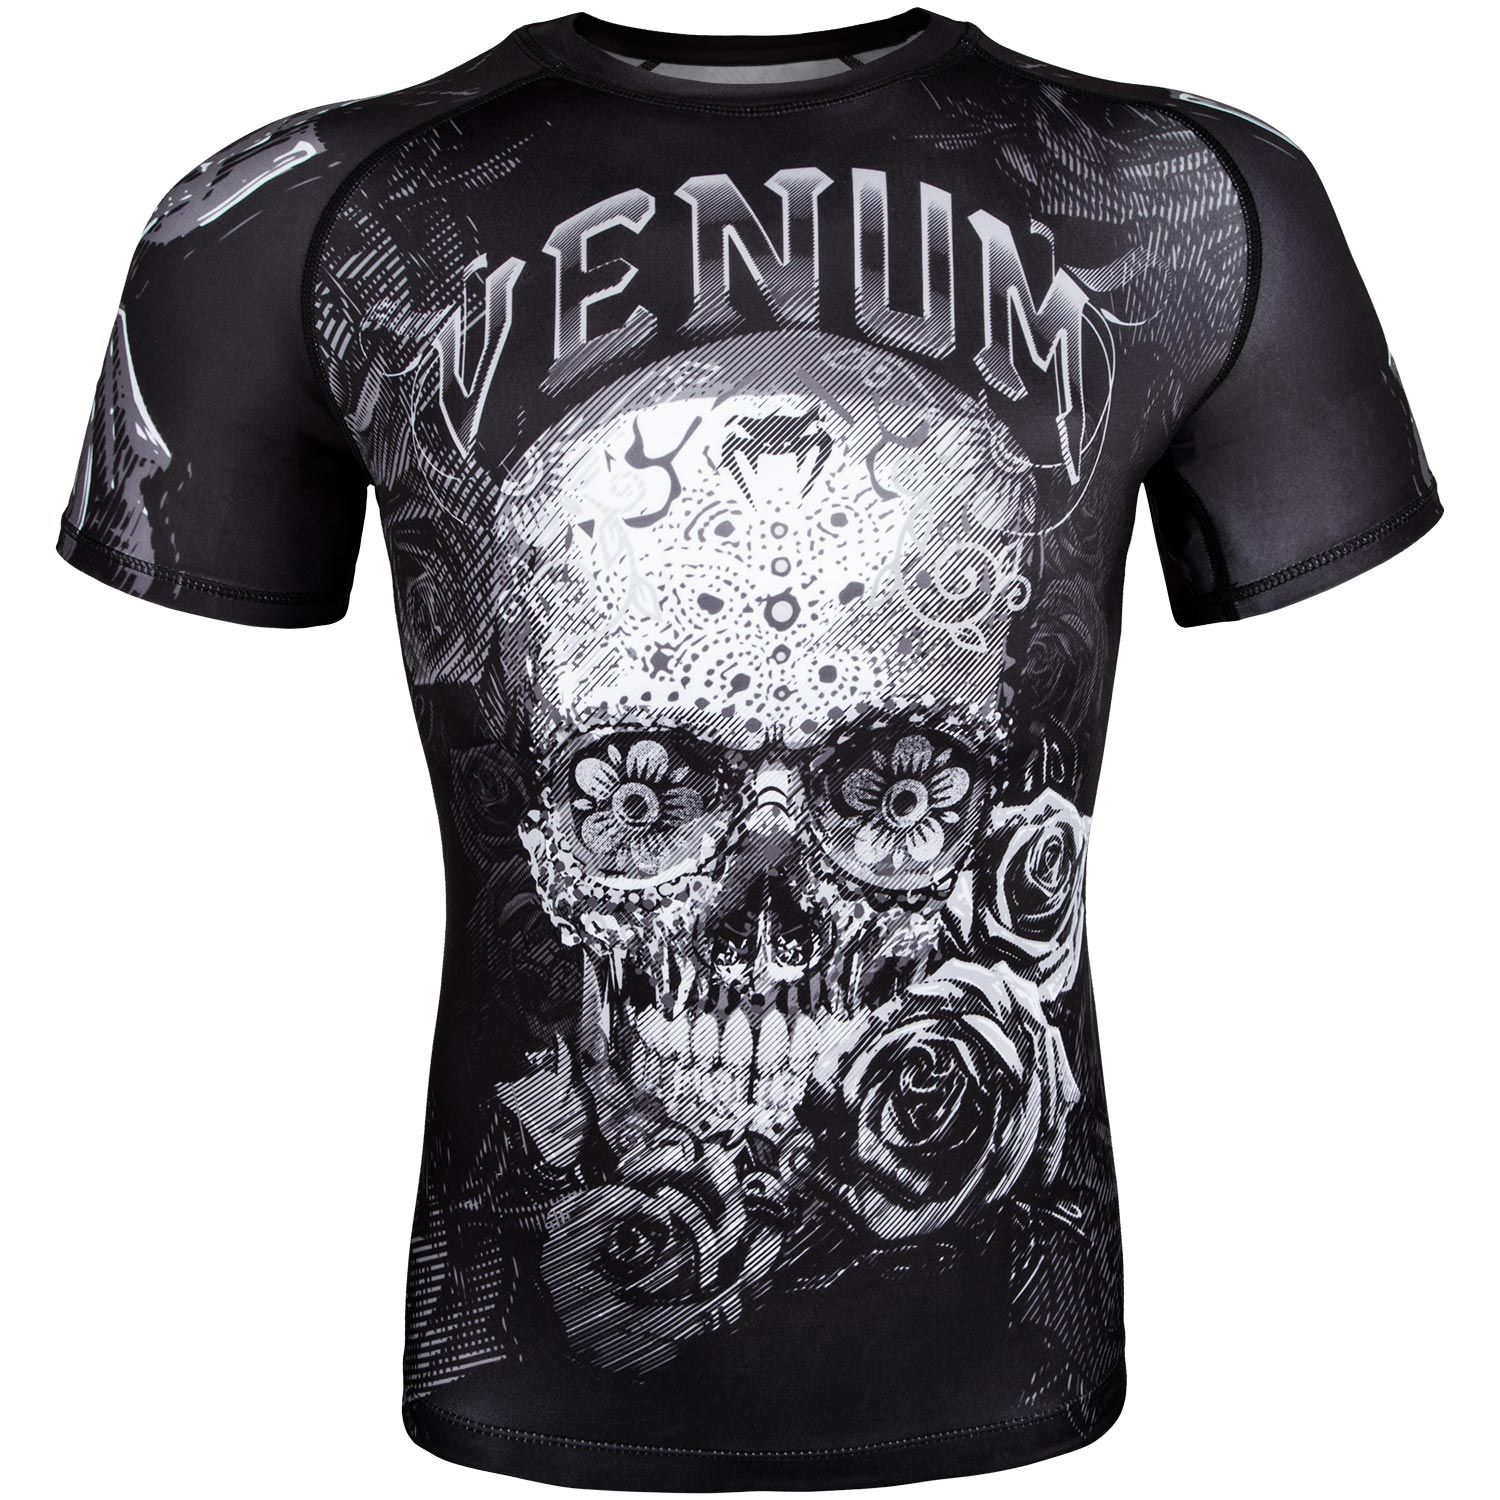 Venum Santa Muerte 3.0 Rashguard - Short Sleeves - Black/White